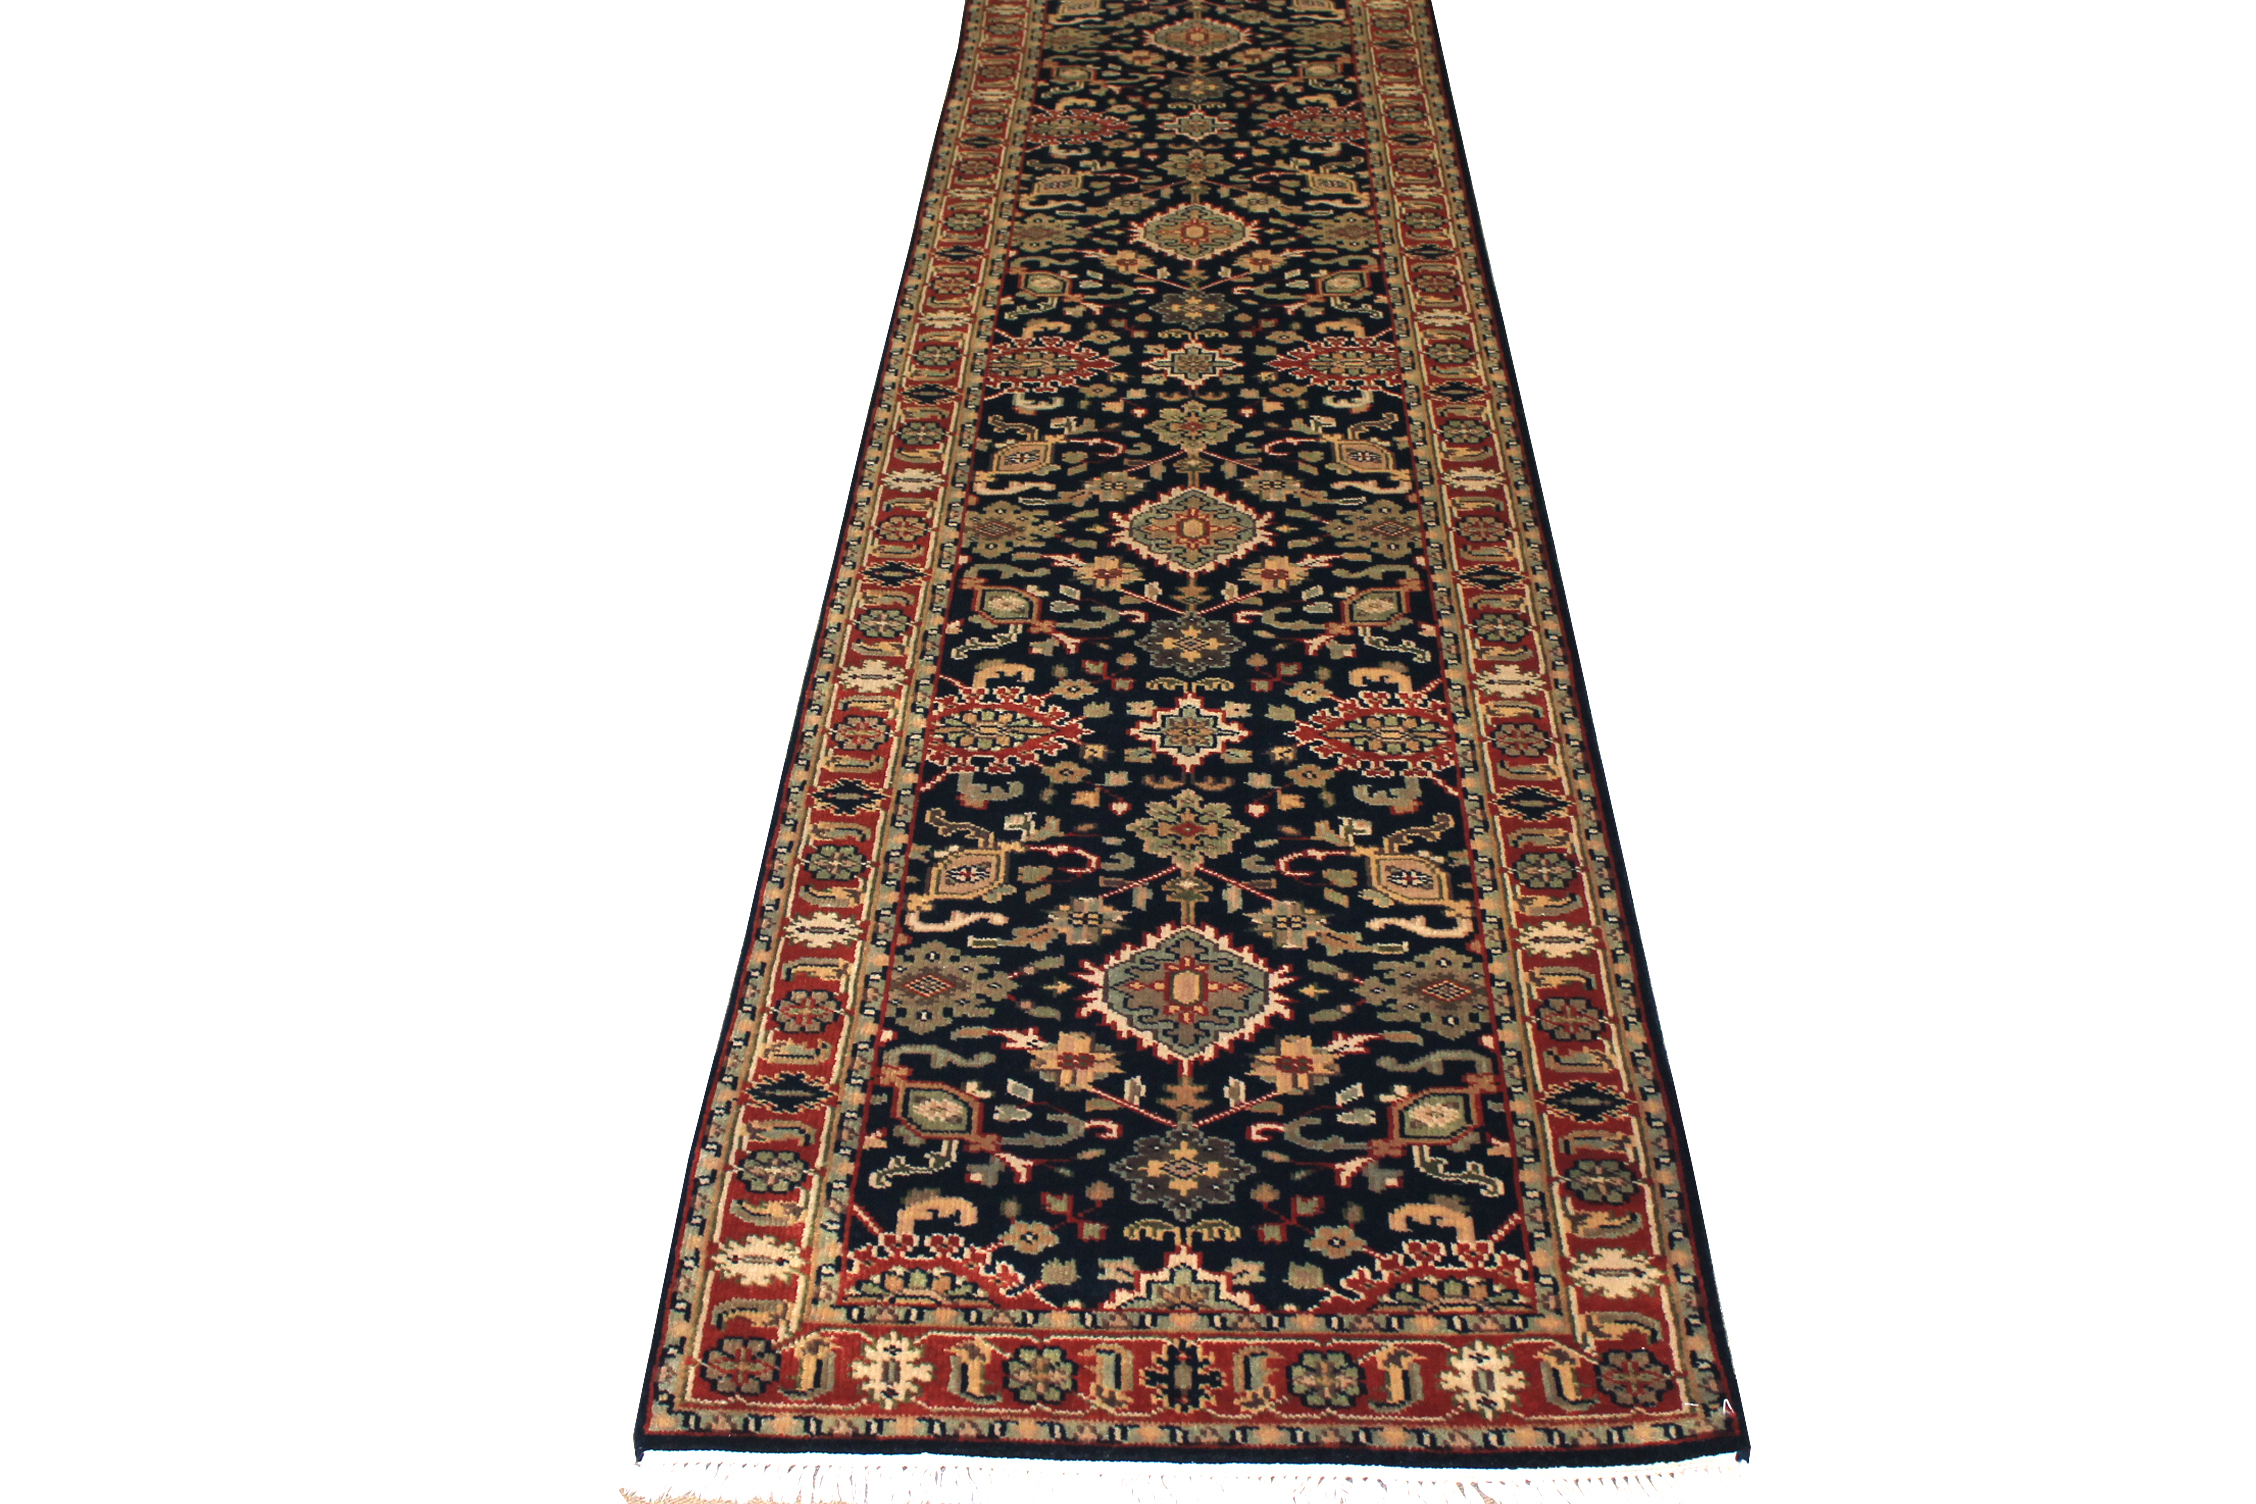 10 ft. Runner Traditional Hand Knotted Wool Area Rug - MR1621